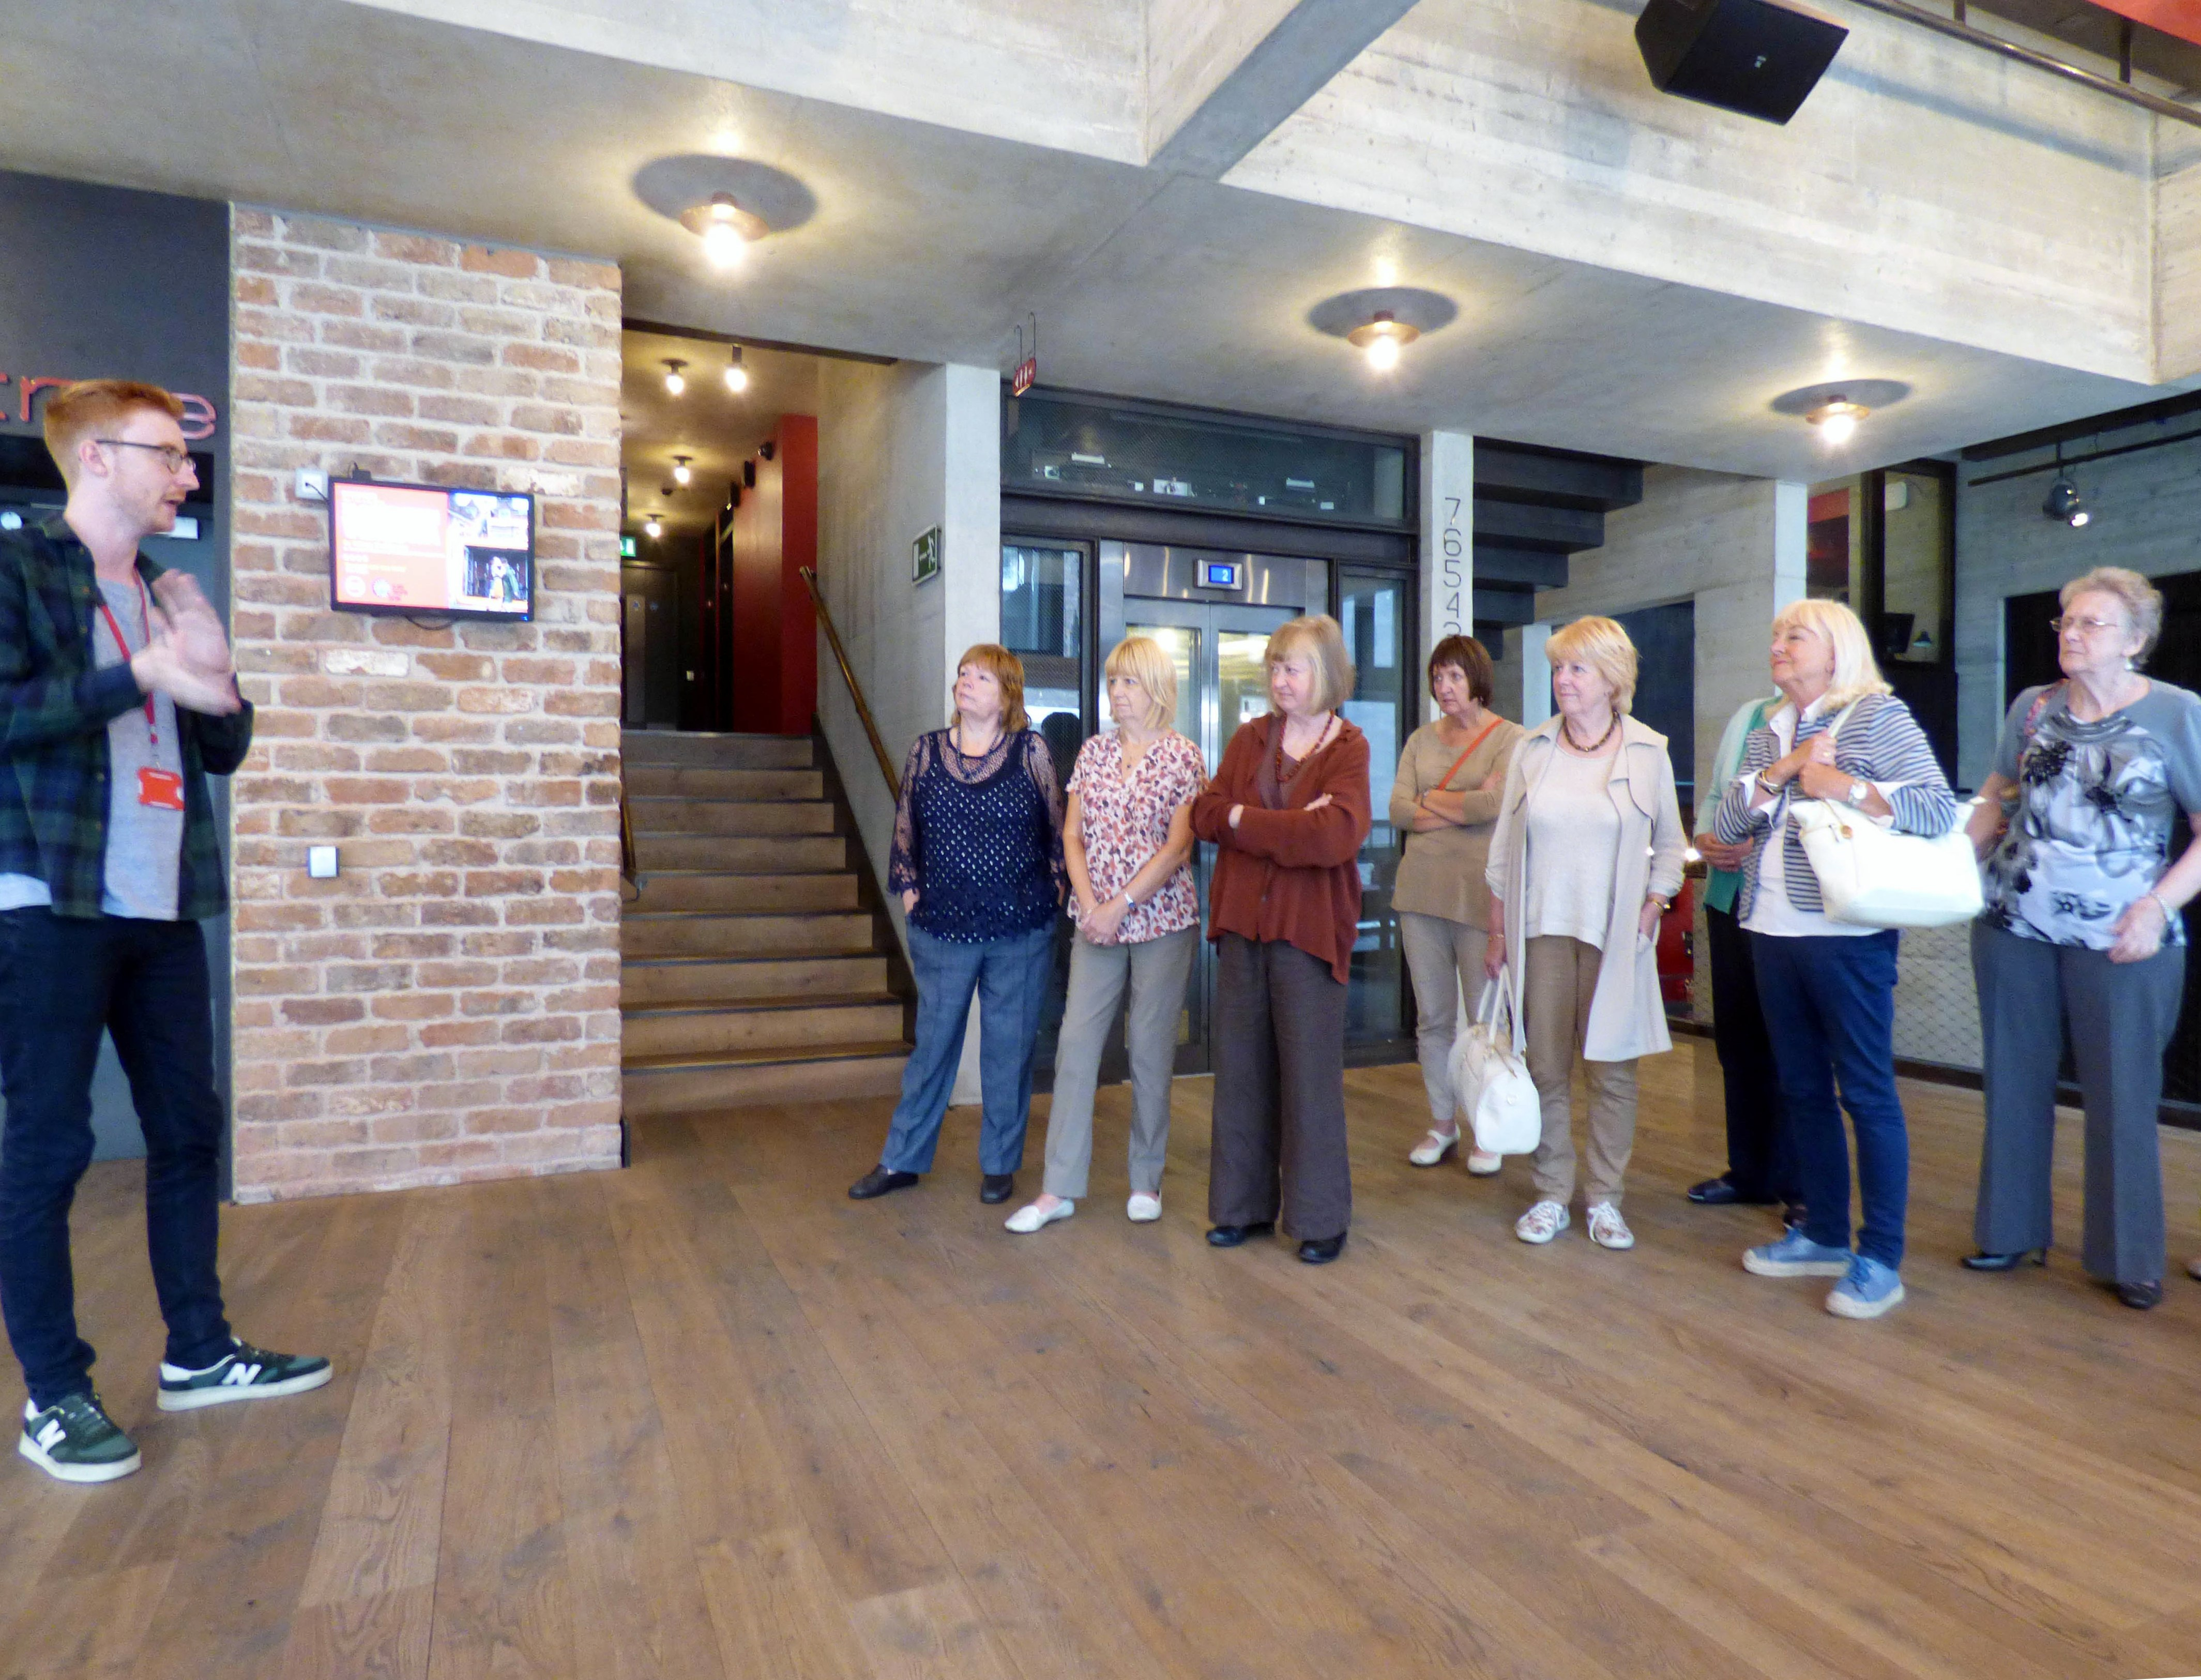 This is Brian our guide on our backstage tour of Everyman Theatre, Liverpool, July 2016